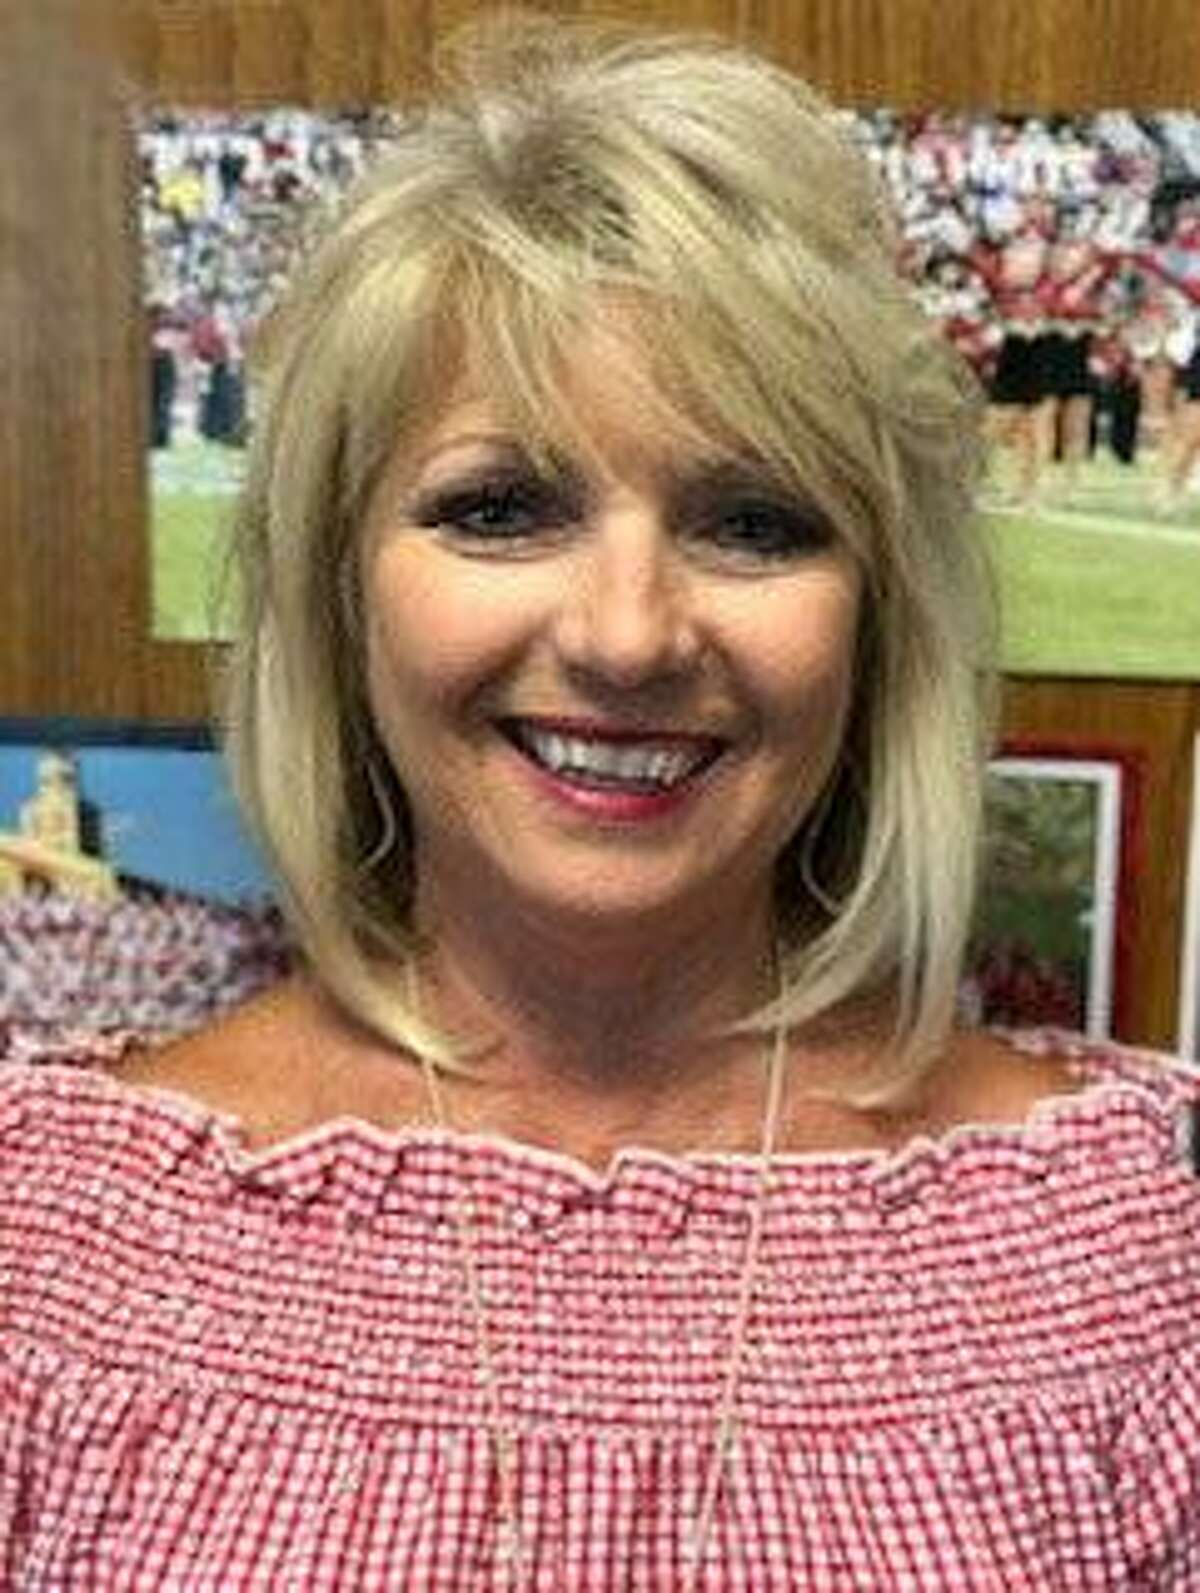 After 37 years of leading the Katy Bengal Brigade and Cheerleaders, Director Patricia